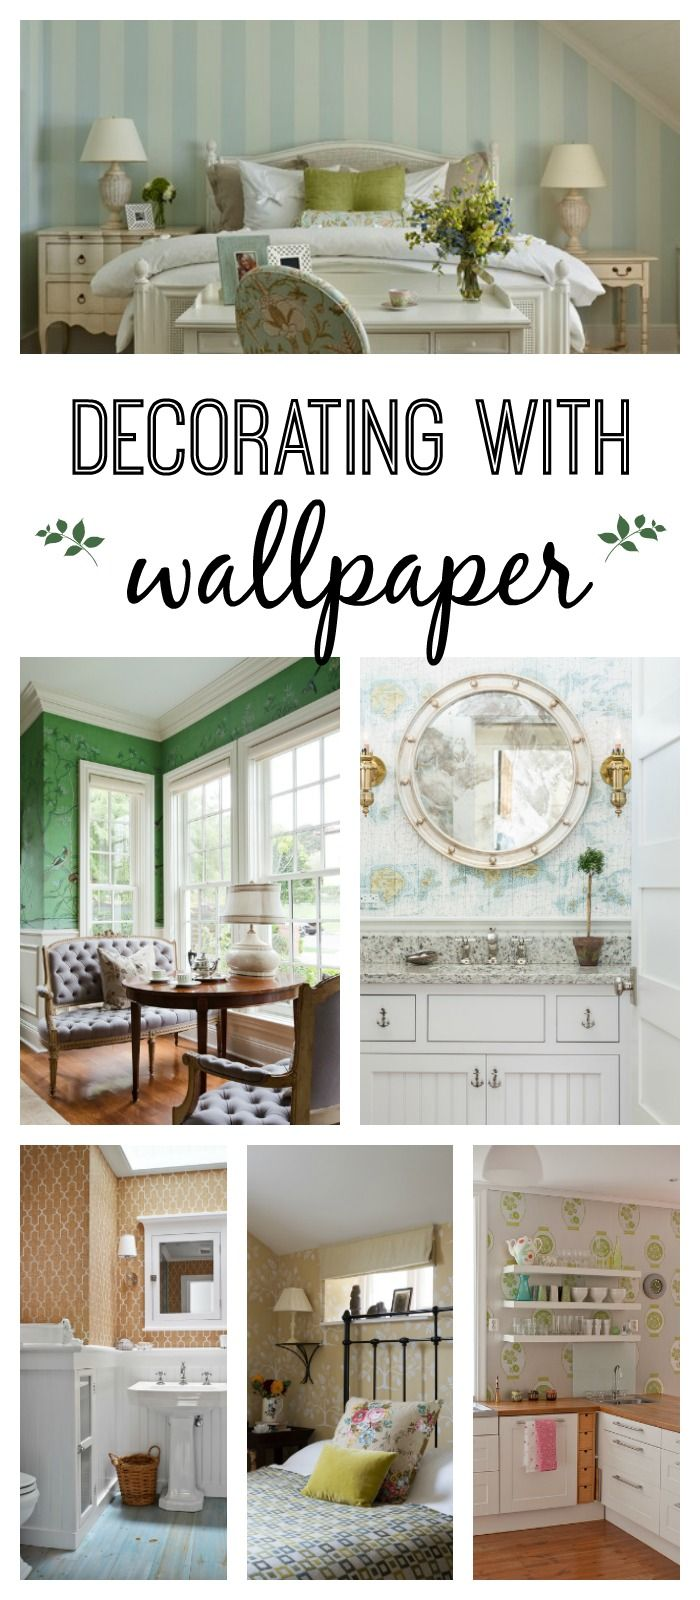 Decorating With Wallpaper 13 Ideas